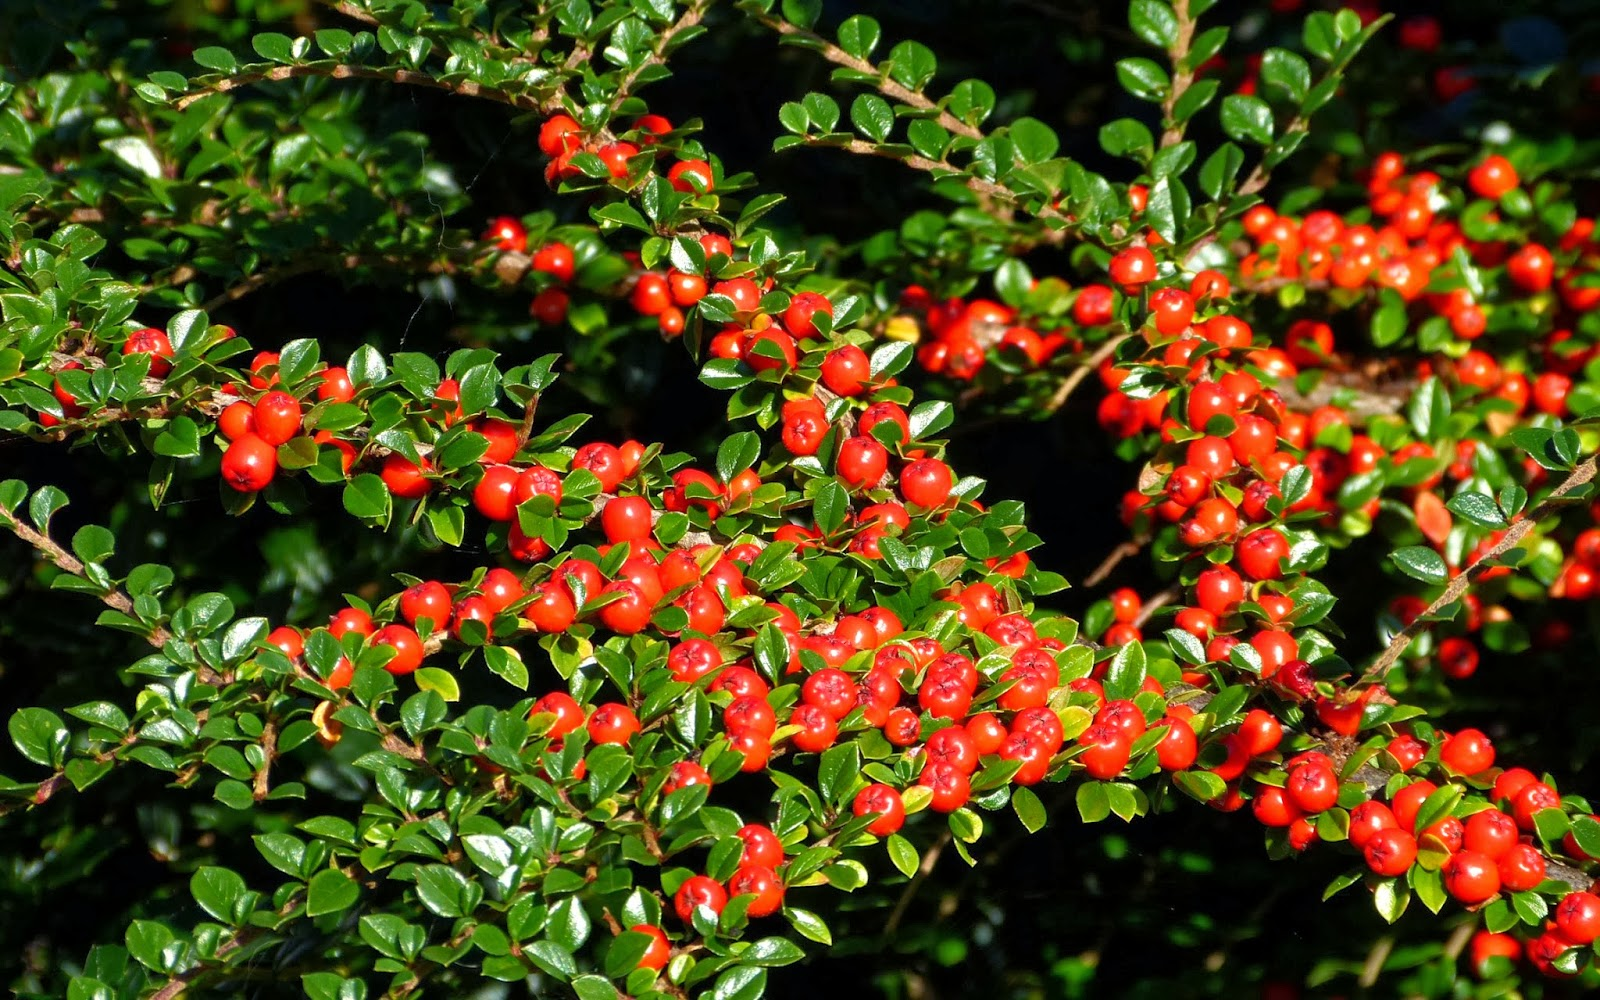 Landscaping Shrubs With Red Berries : A kilchoan diary red berries